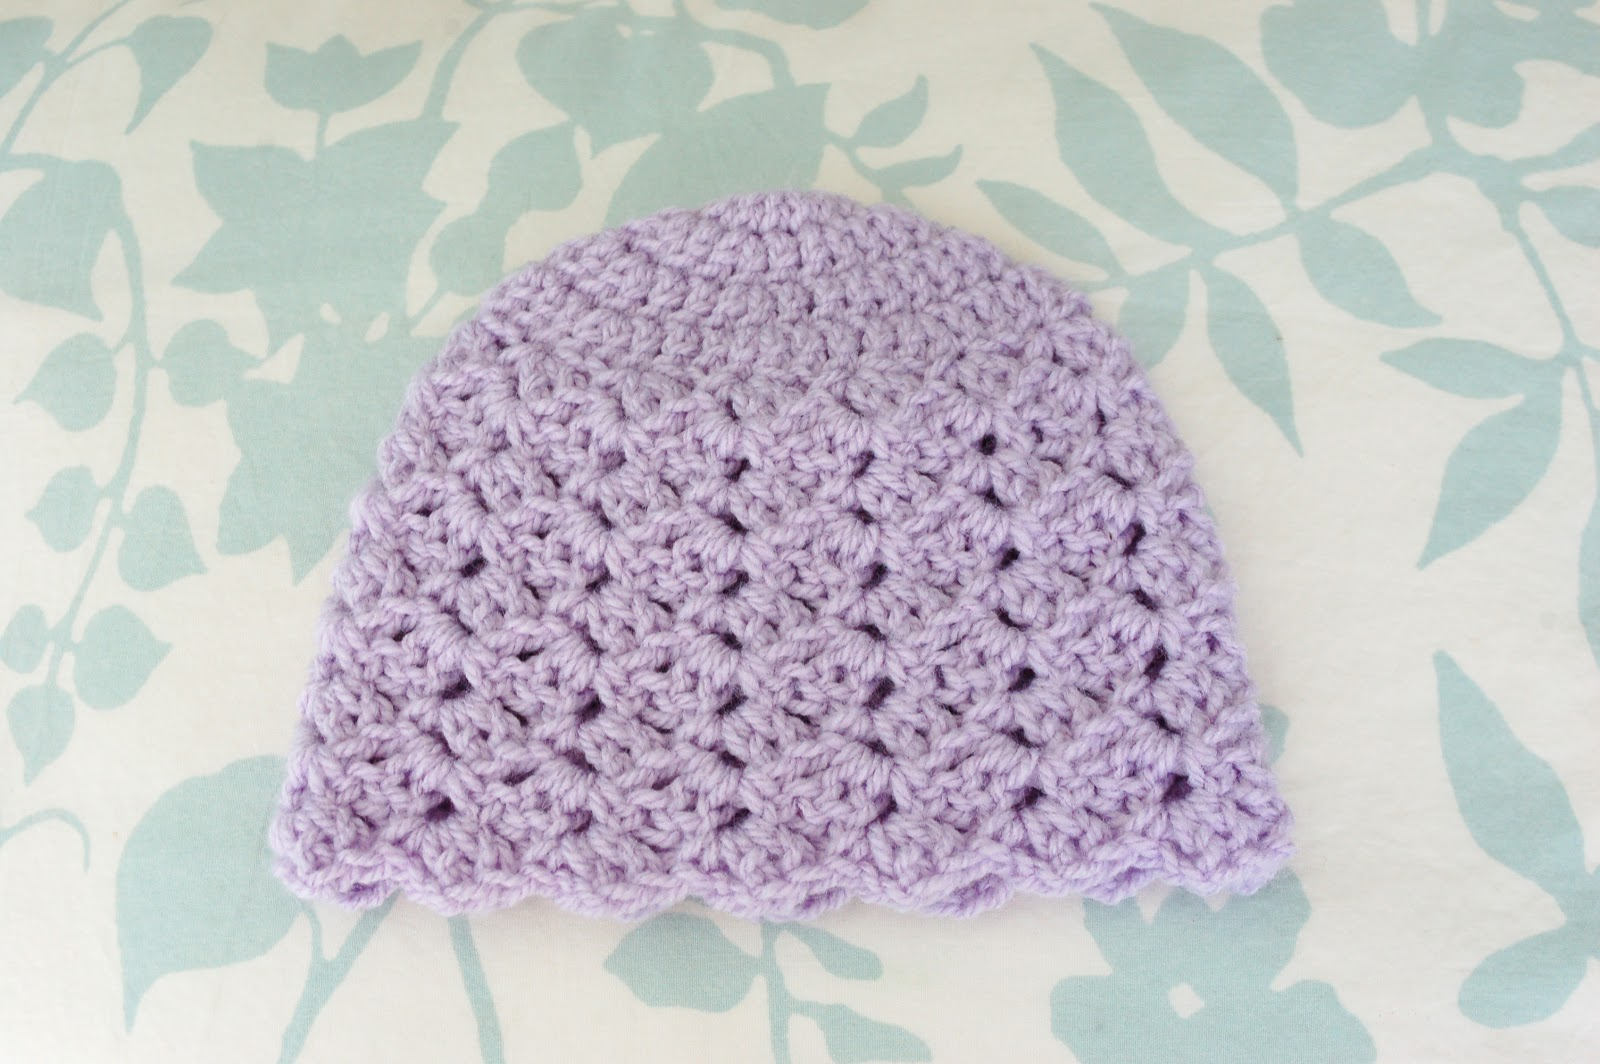 Free Crochet Pattern For A Newborn Hat : Alli Crafts: Free Pattern: Tulip Stitch Hat - Newborn